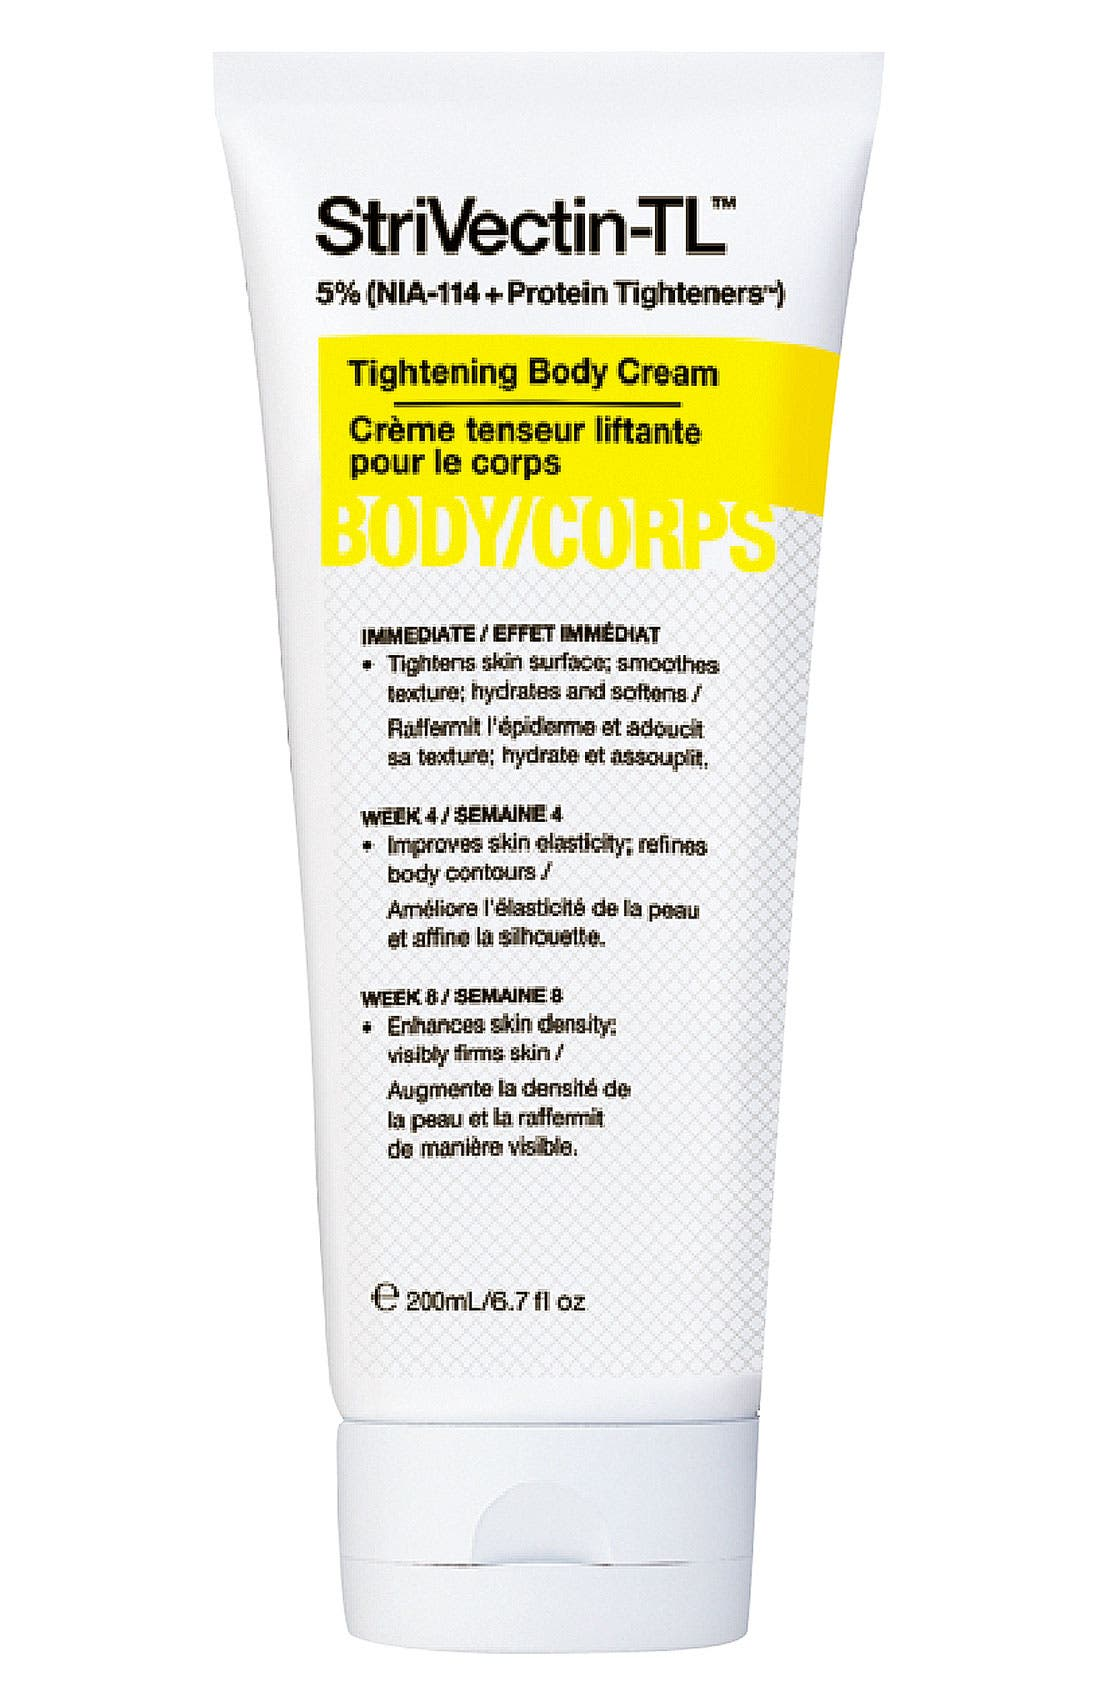 StriVectin-TL™ Tightening Body Cream